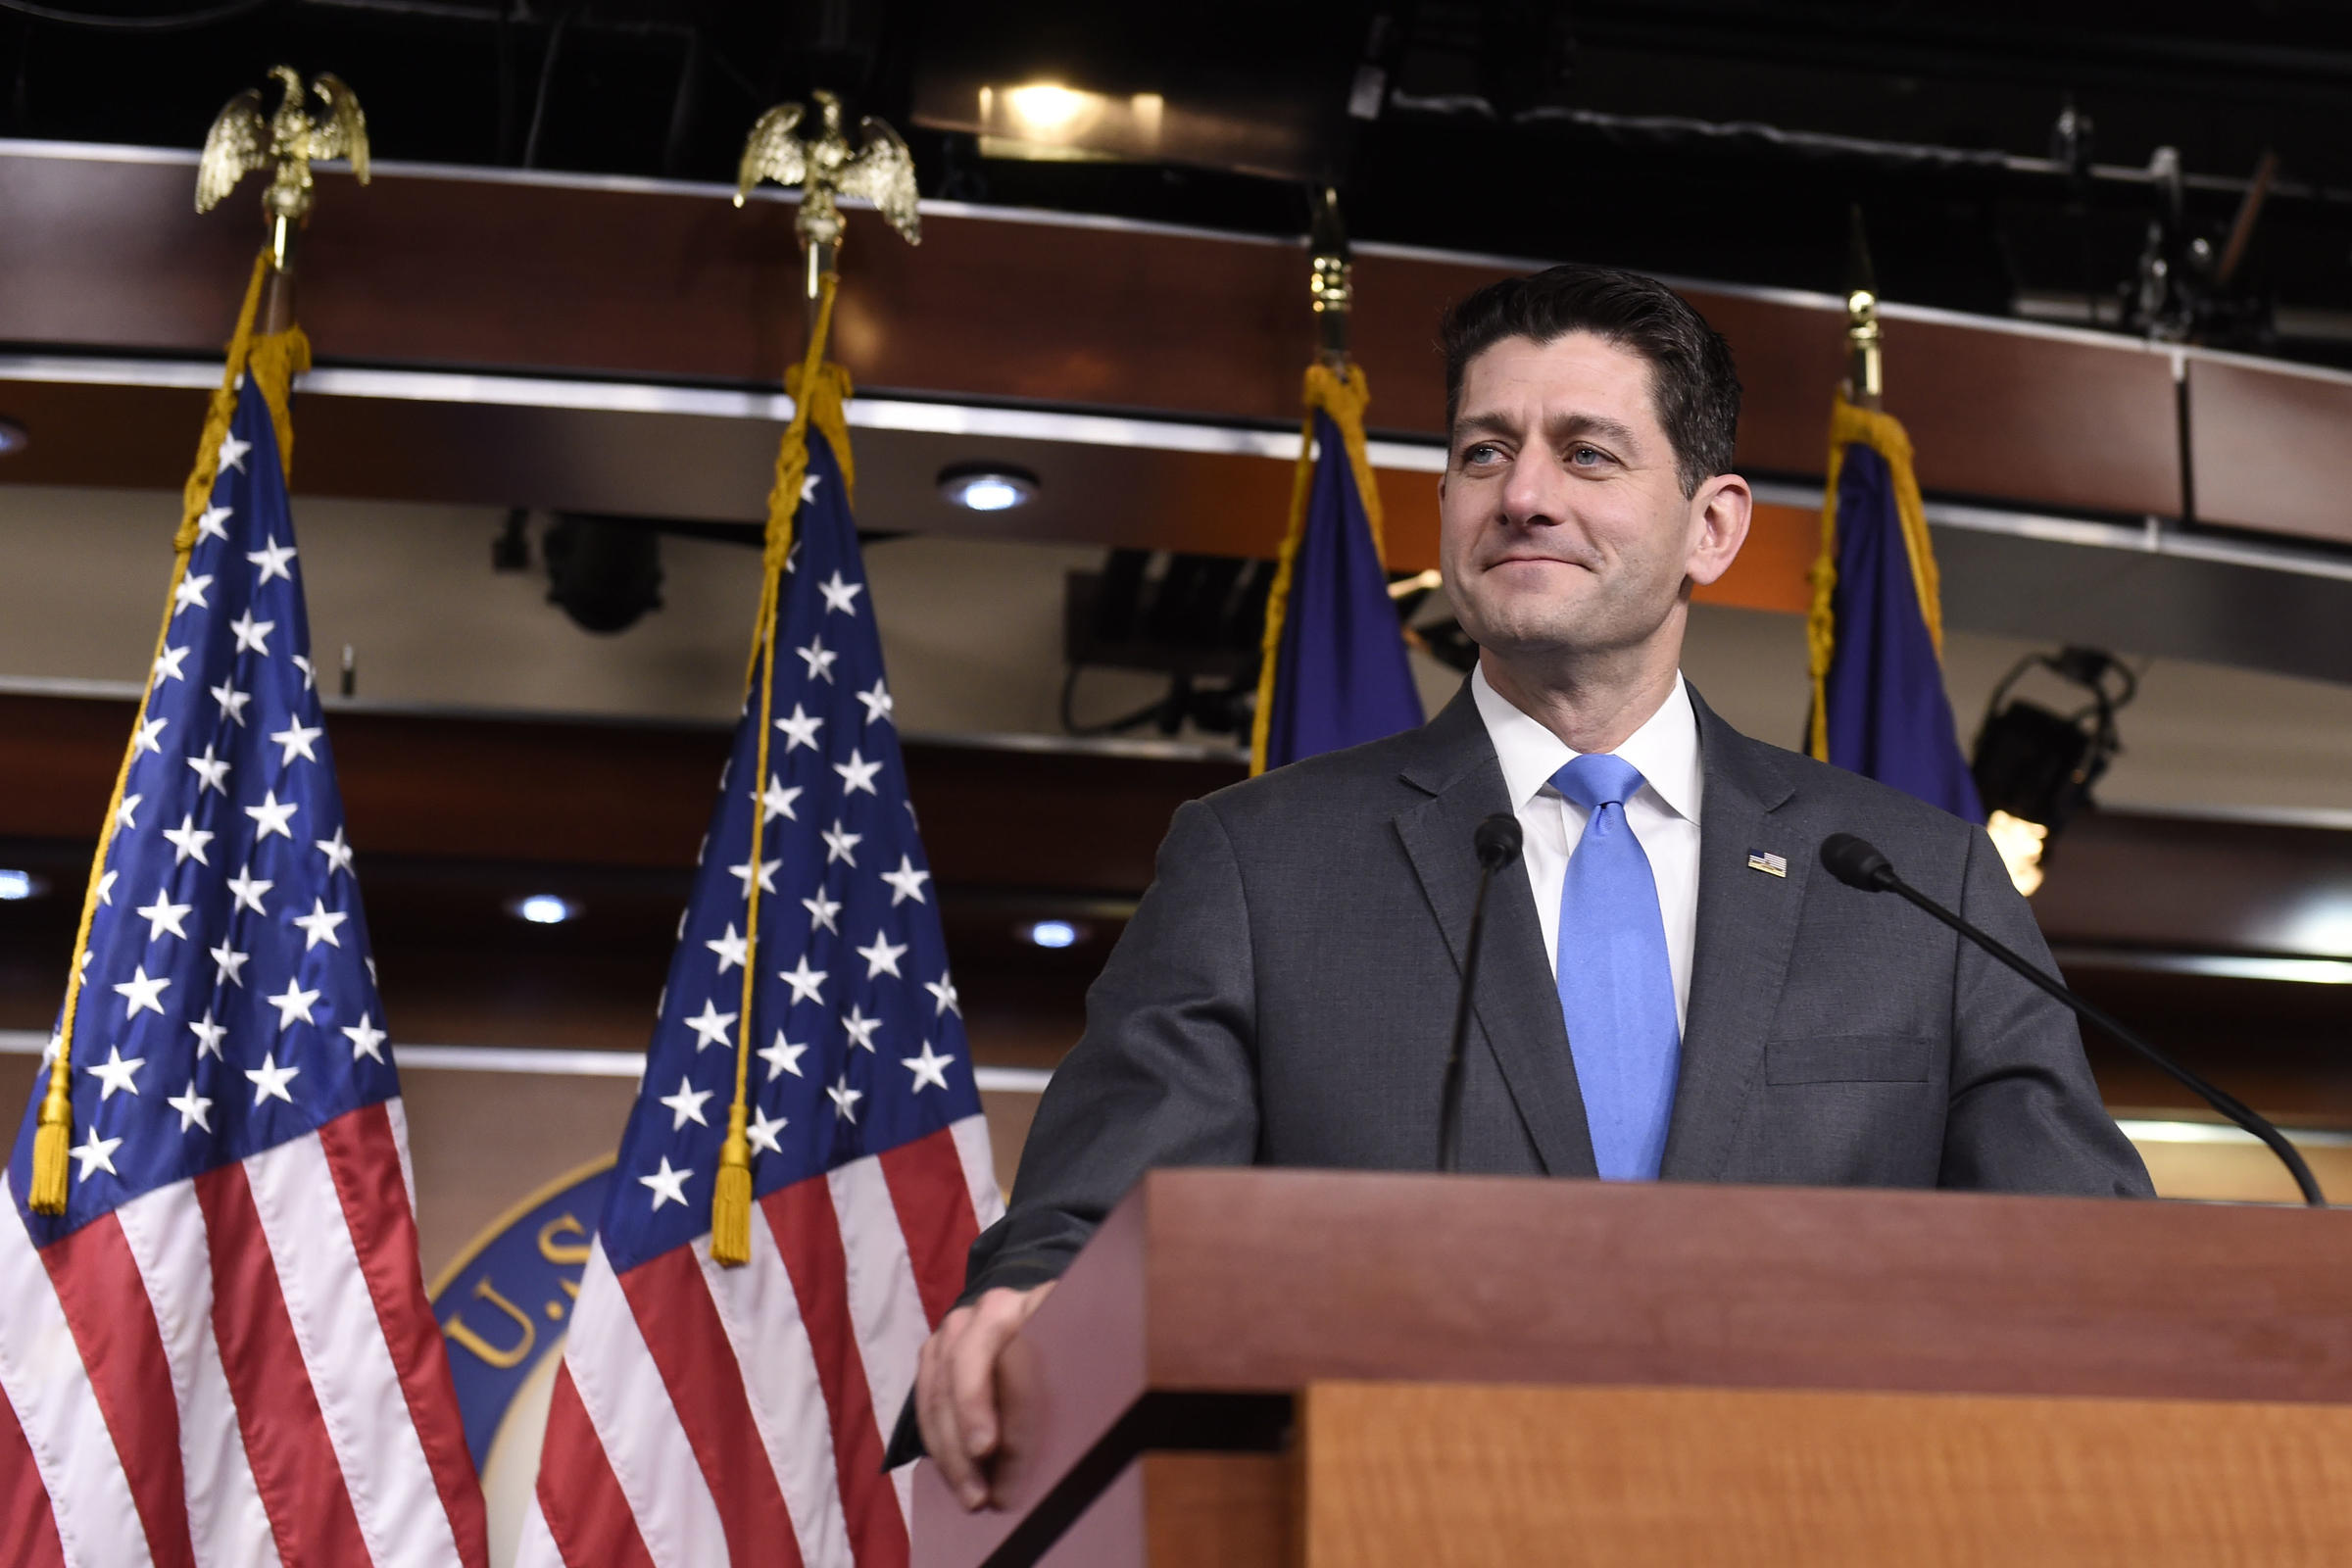 Speaker Of The House Paul Ryan Announces He Will Not Seek Re Election On  Wednesday. Ryan, 48, Cited Wanting To Be Around His Adolescent Children  More Often.